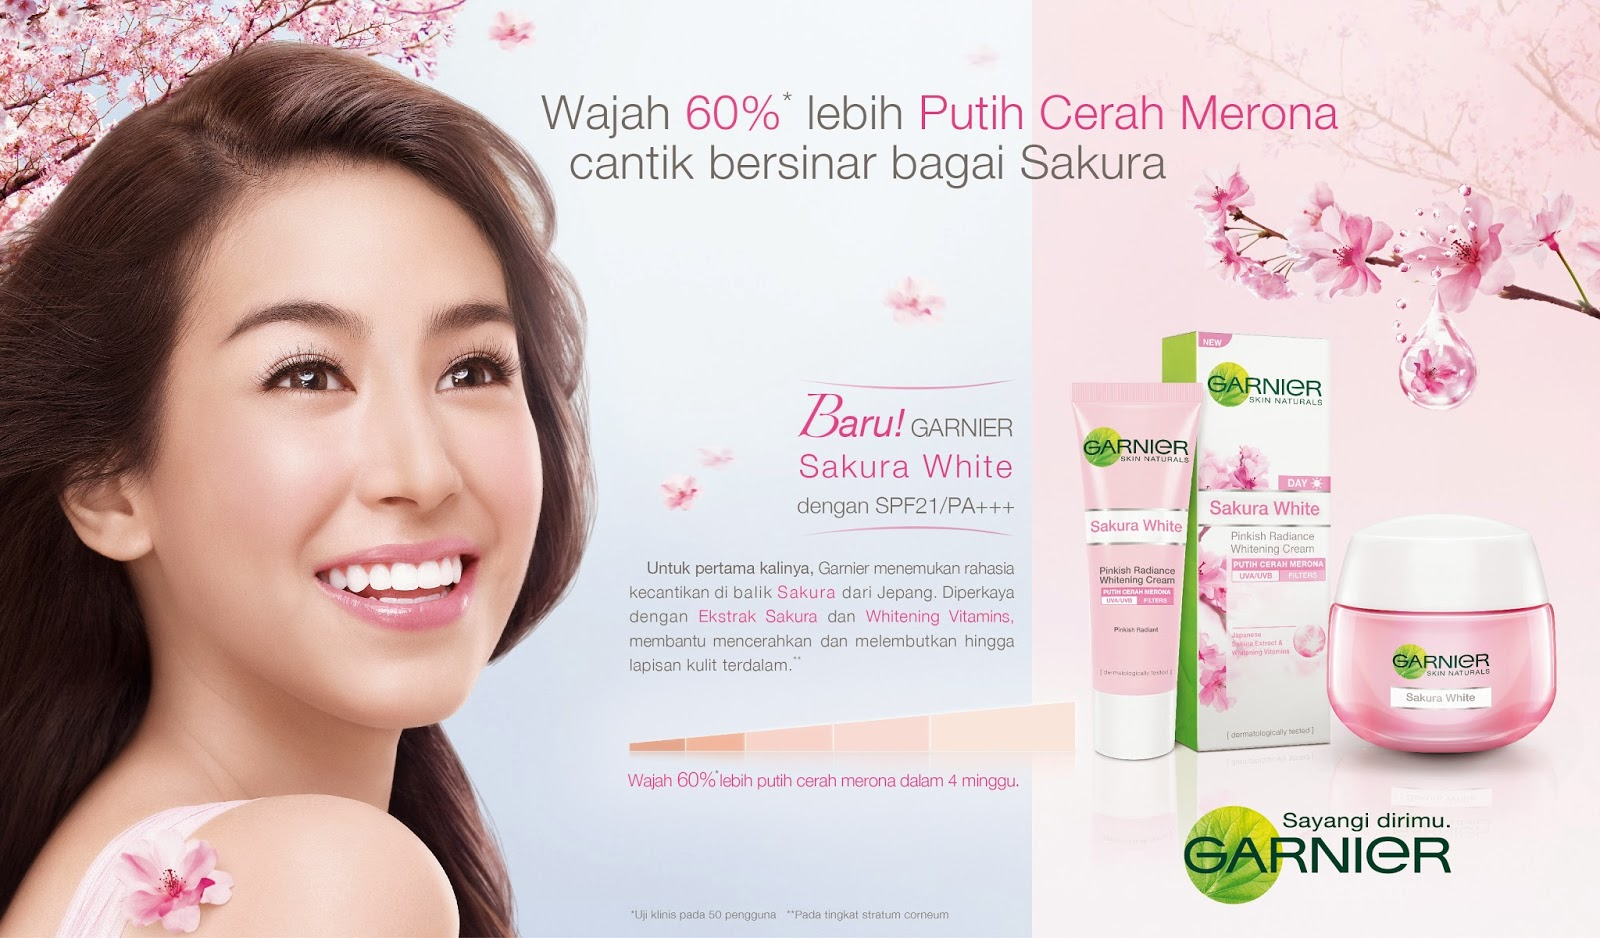 Garnier Sakura White Launch Event